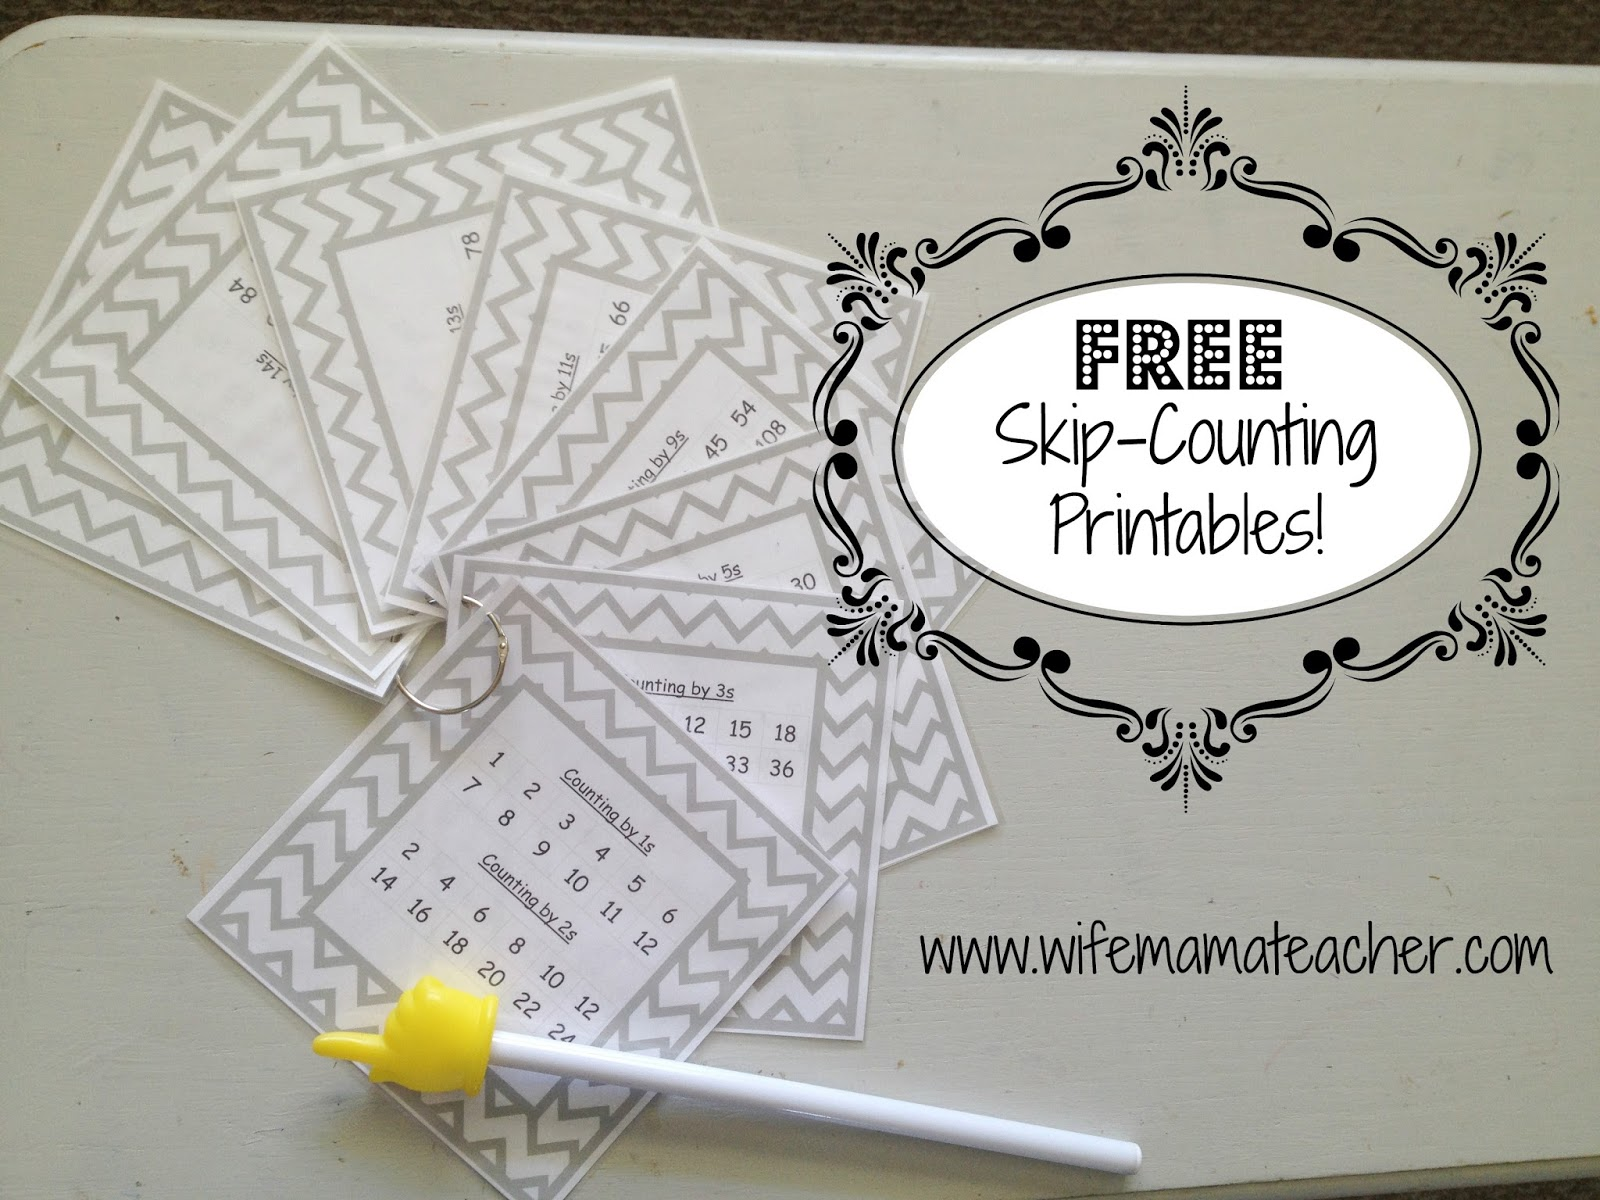 Wife Mama Teacher Free Skip Counting Printables